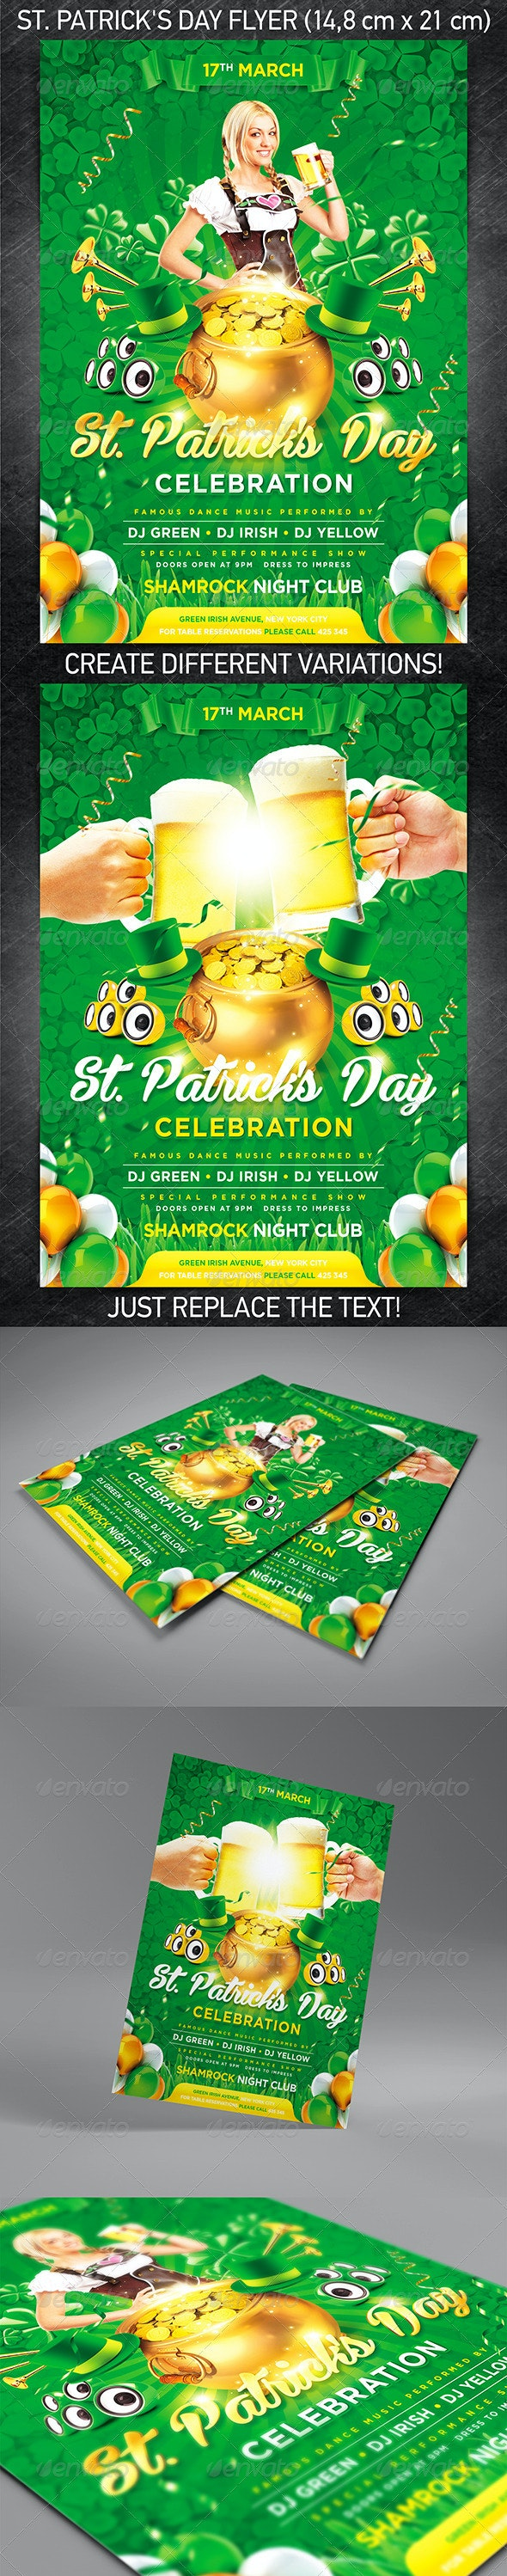 St. Patrick's Day Flyer Vol.2 - Holidays Events